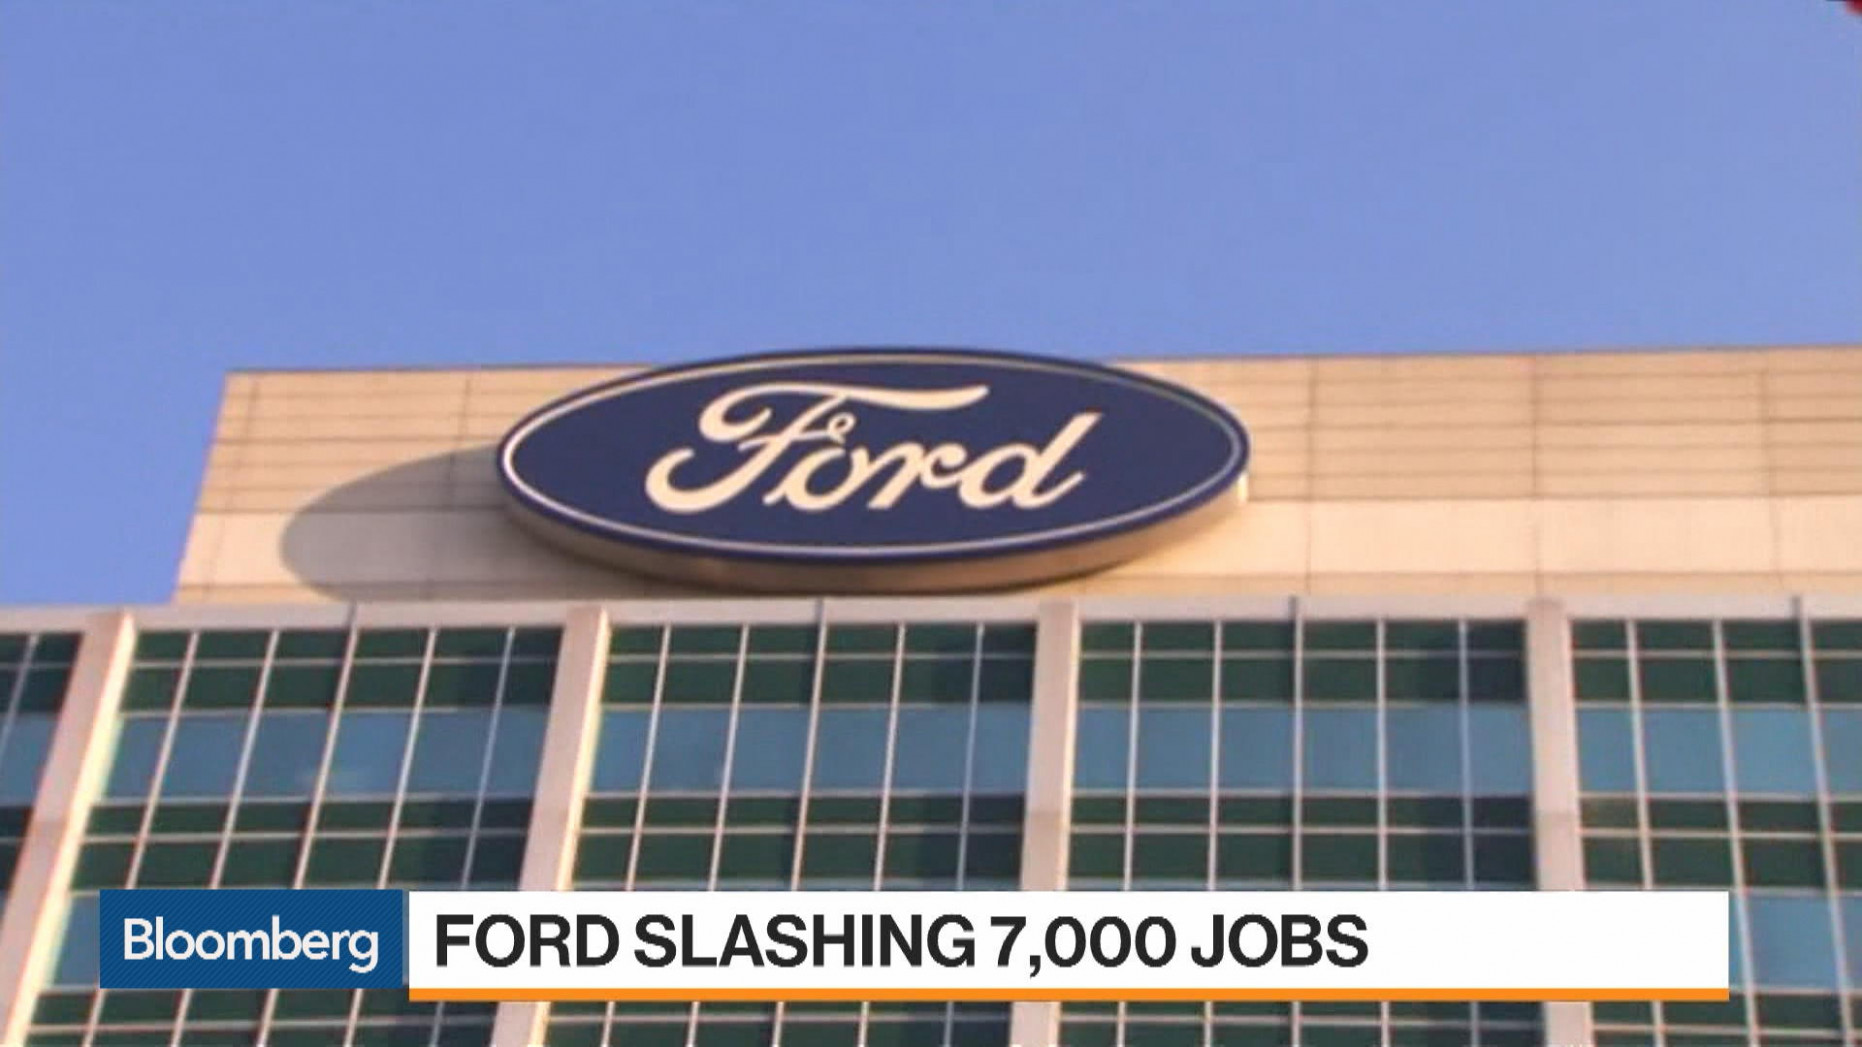 Ford Slashing 8,8 Jobs as Disruption Sweeps Car Industry - Bloomberg